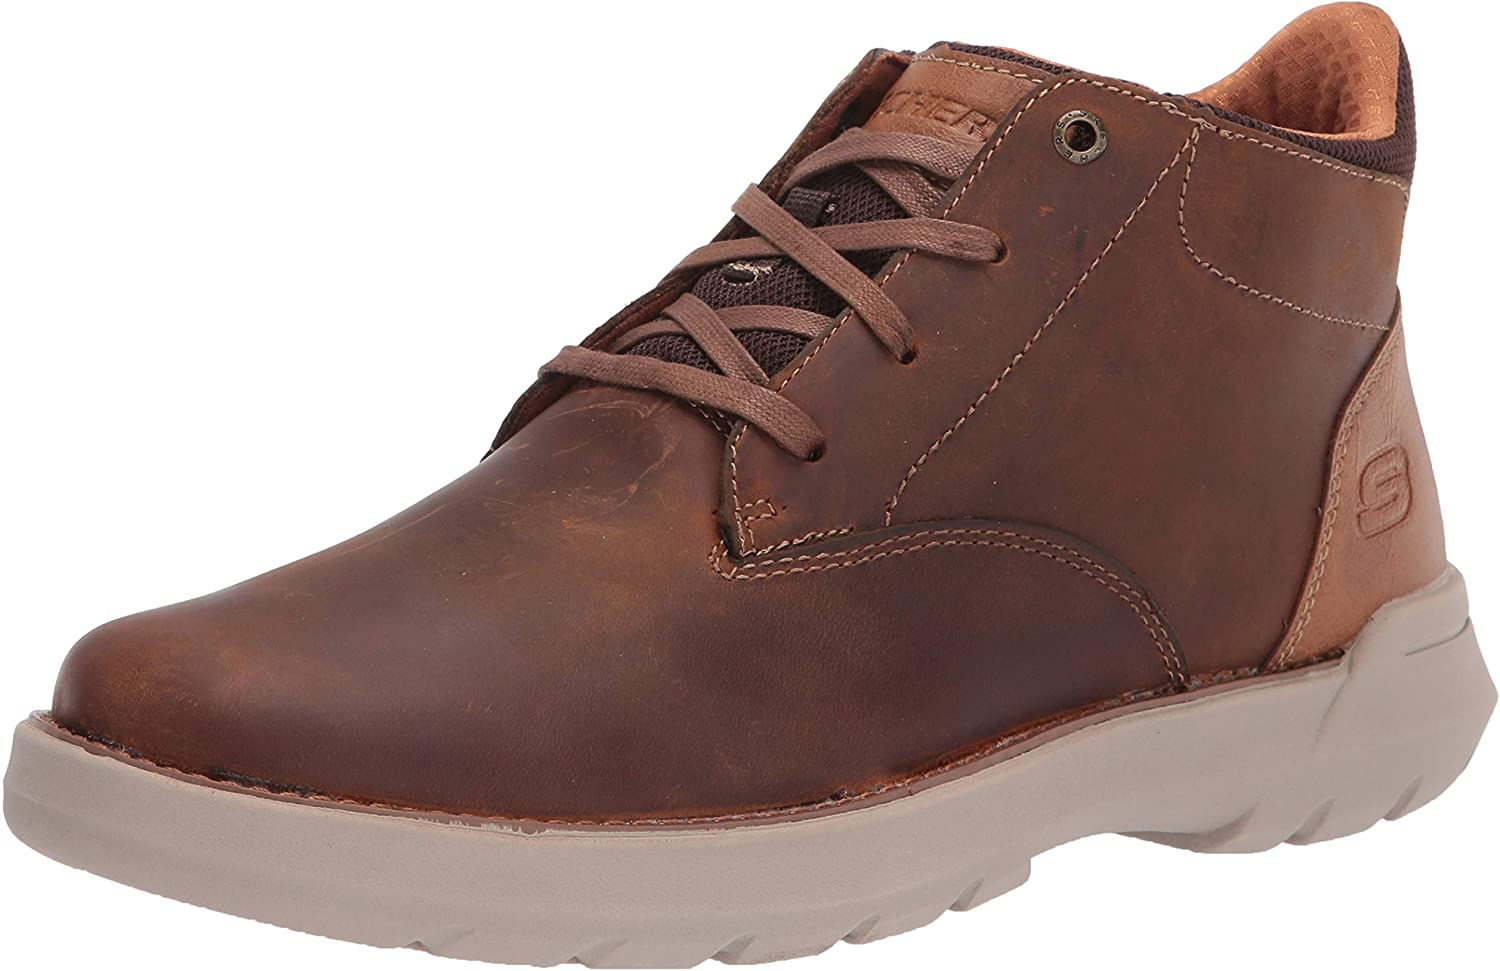 Skechers Men's Doveno-molens Lace Up Boot Don't miss the campaign specialty shop Hiking